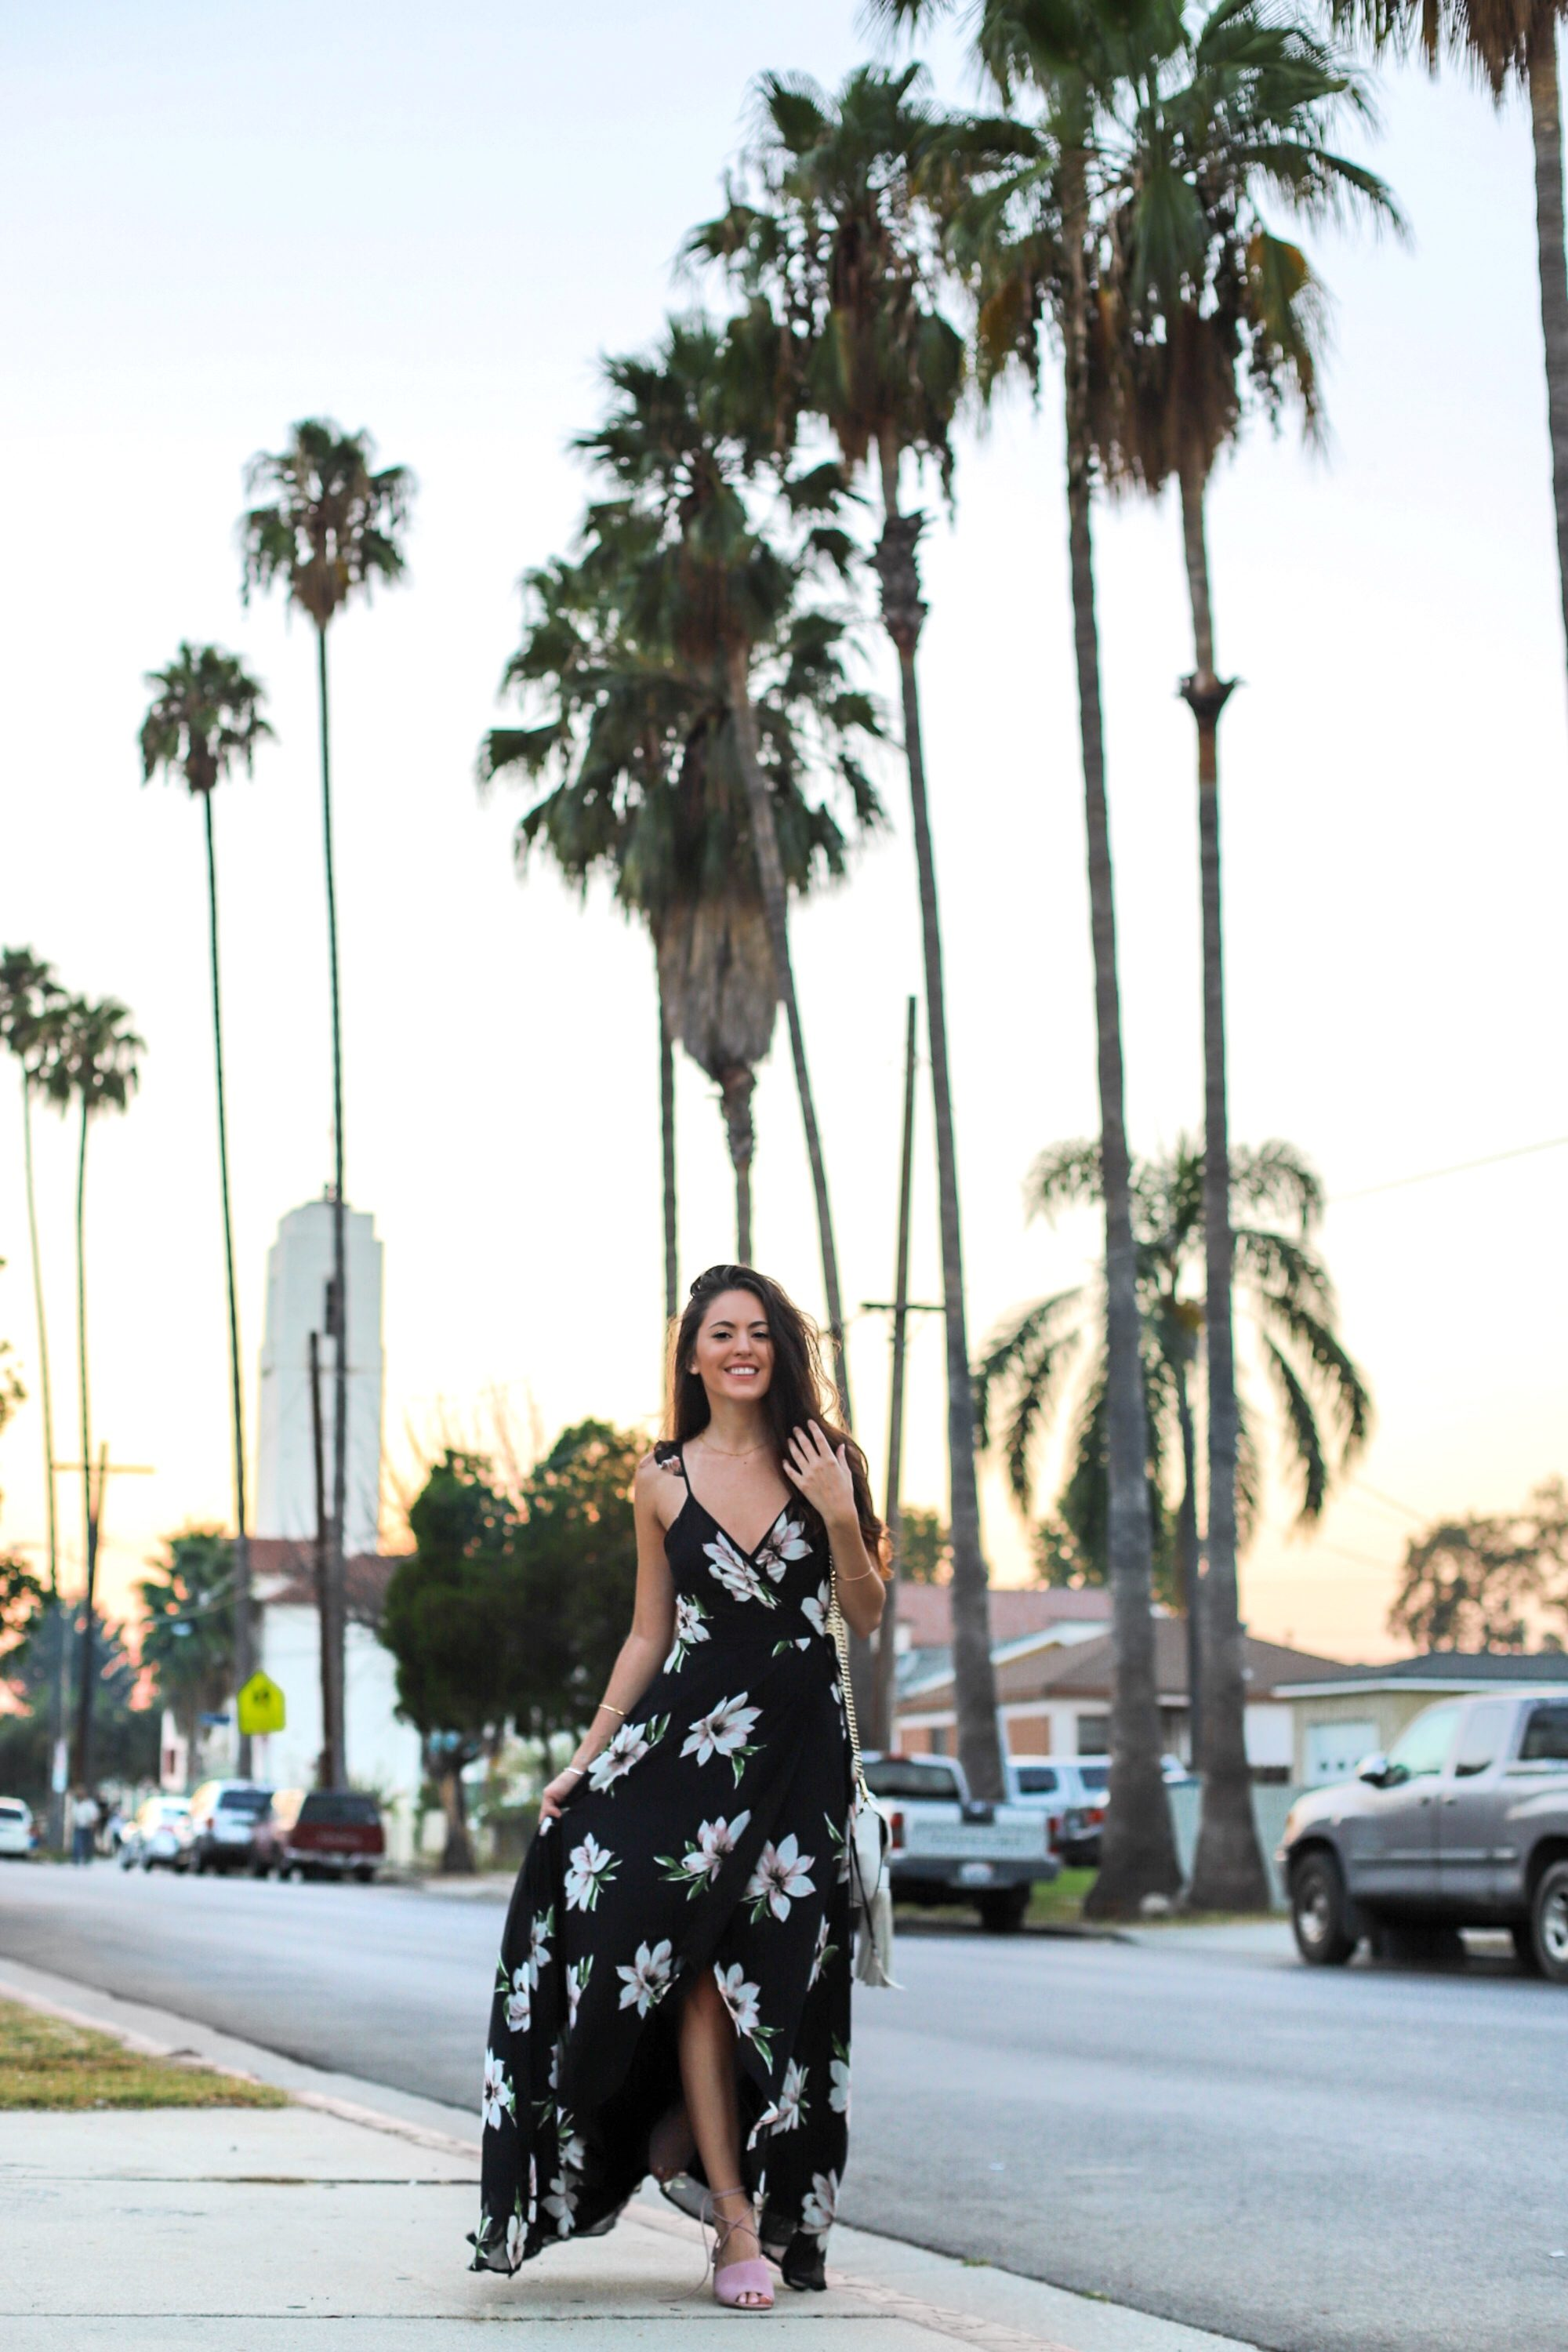 black and pink maxi, black maxi dress, black floral maxi dress, summer to fall outfit ideas, summer style, summer outfit ideas, fall wedding outfit ideas, Los Angeles, how to wear maxi dress for fall, lulus ALL MINE BLACK FLORAL PRINT HIGH-LOW WRAP DRESS